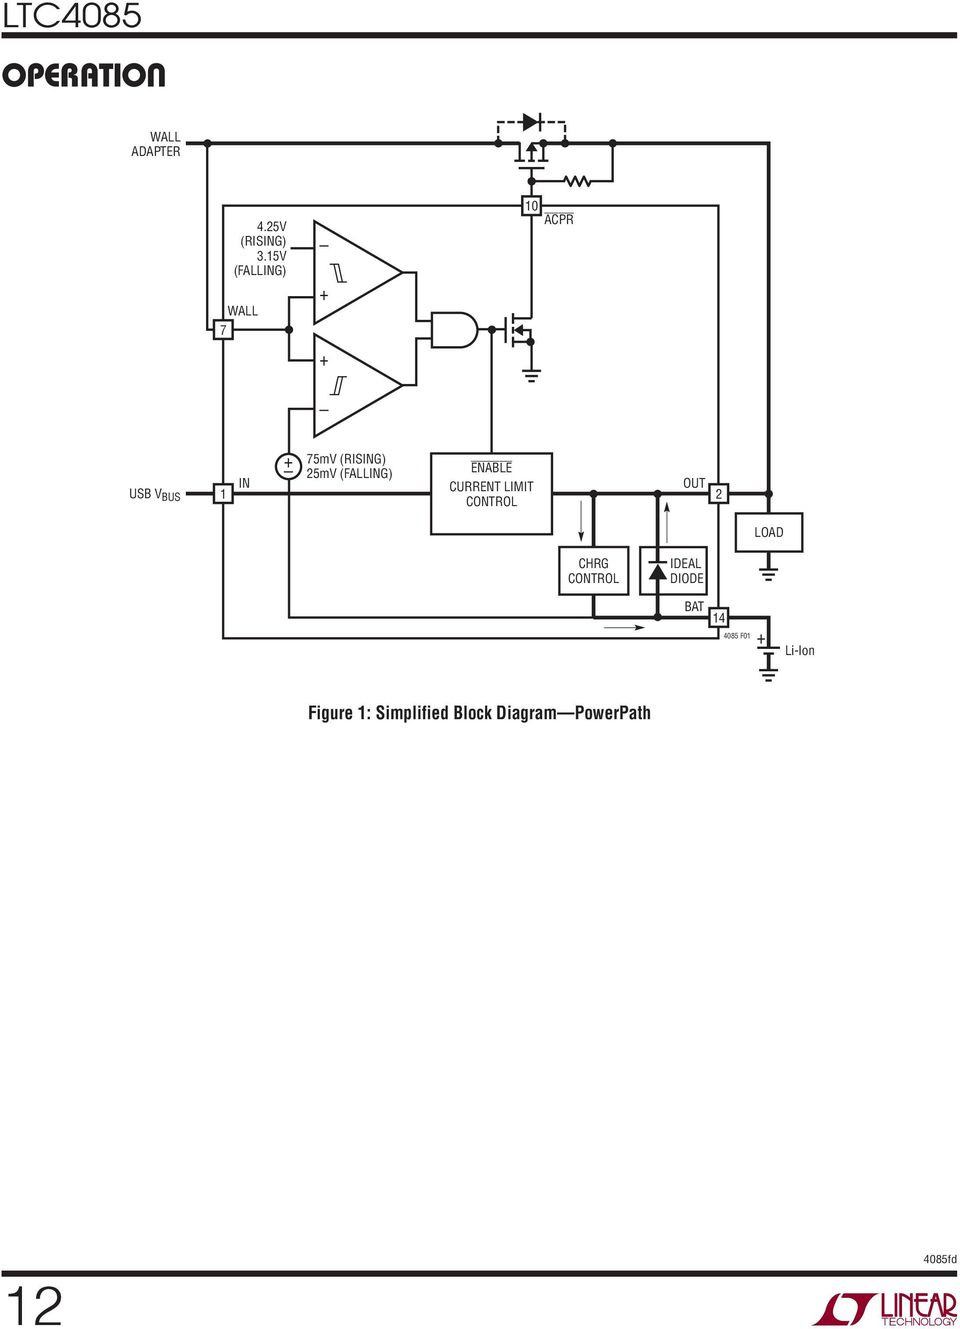 Ltc4085 Usb Power Manager With Ideal Diode Controller And Li Ion Ltc4425 Linear Supercap Charger Electronc Circuit Diagram Falling Enable In Current Limit Out 1 2 Control Load Chrg